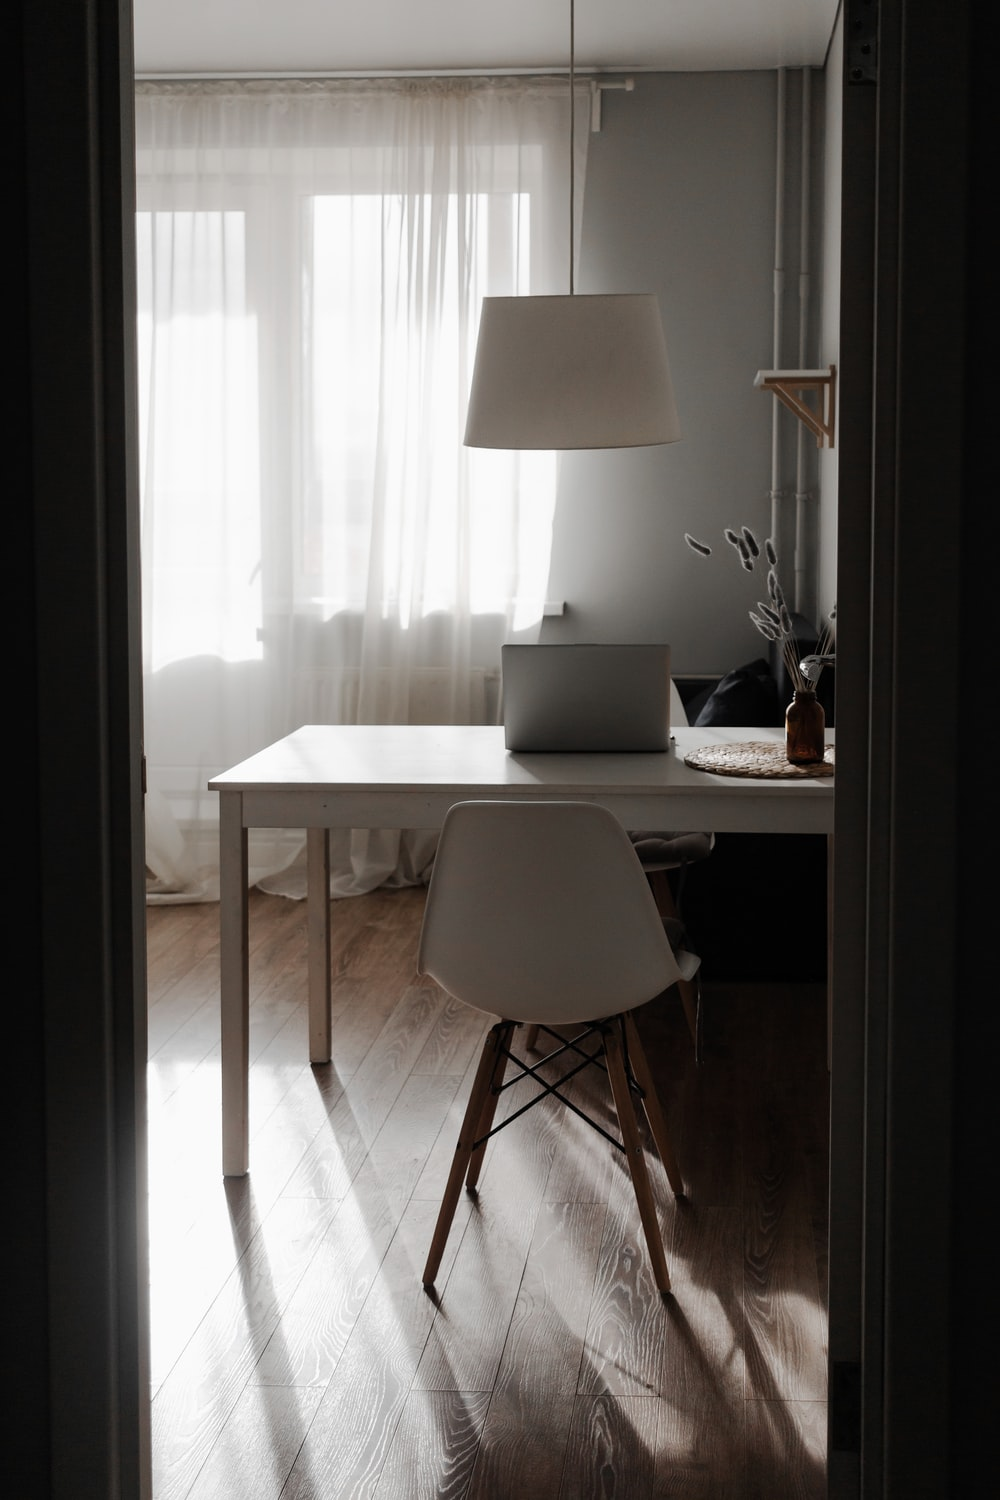 white table lamp on white table